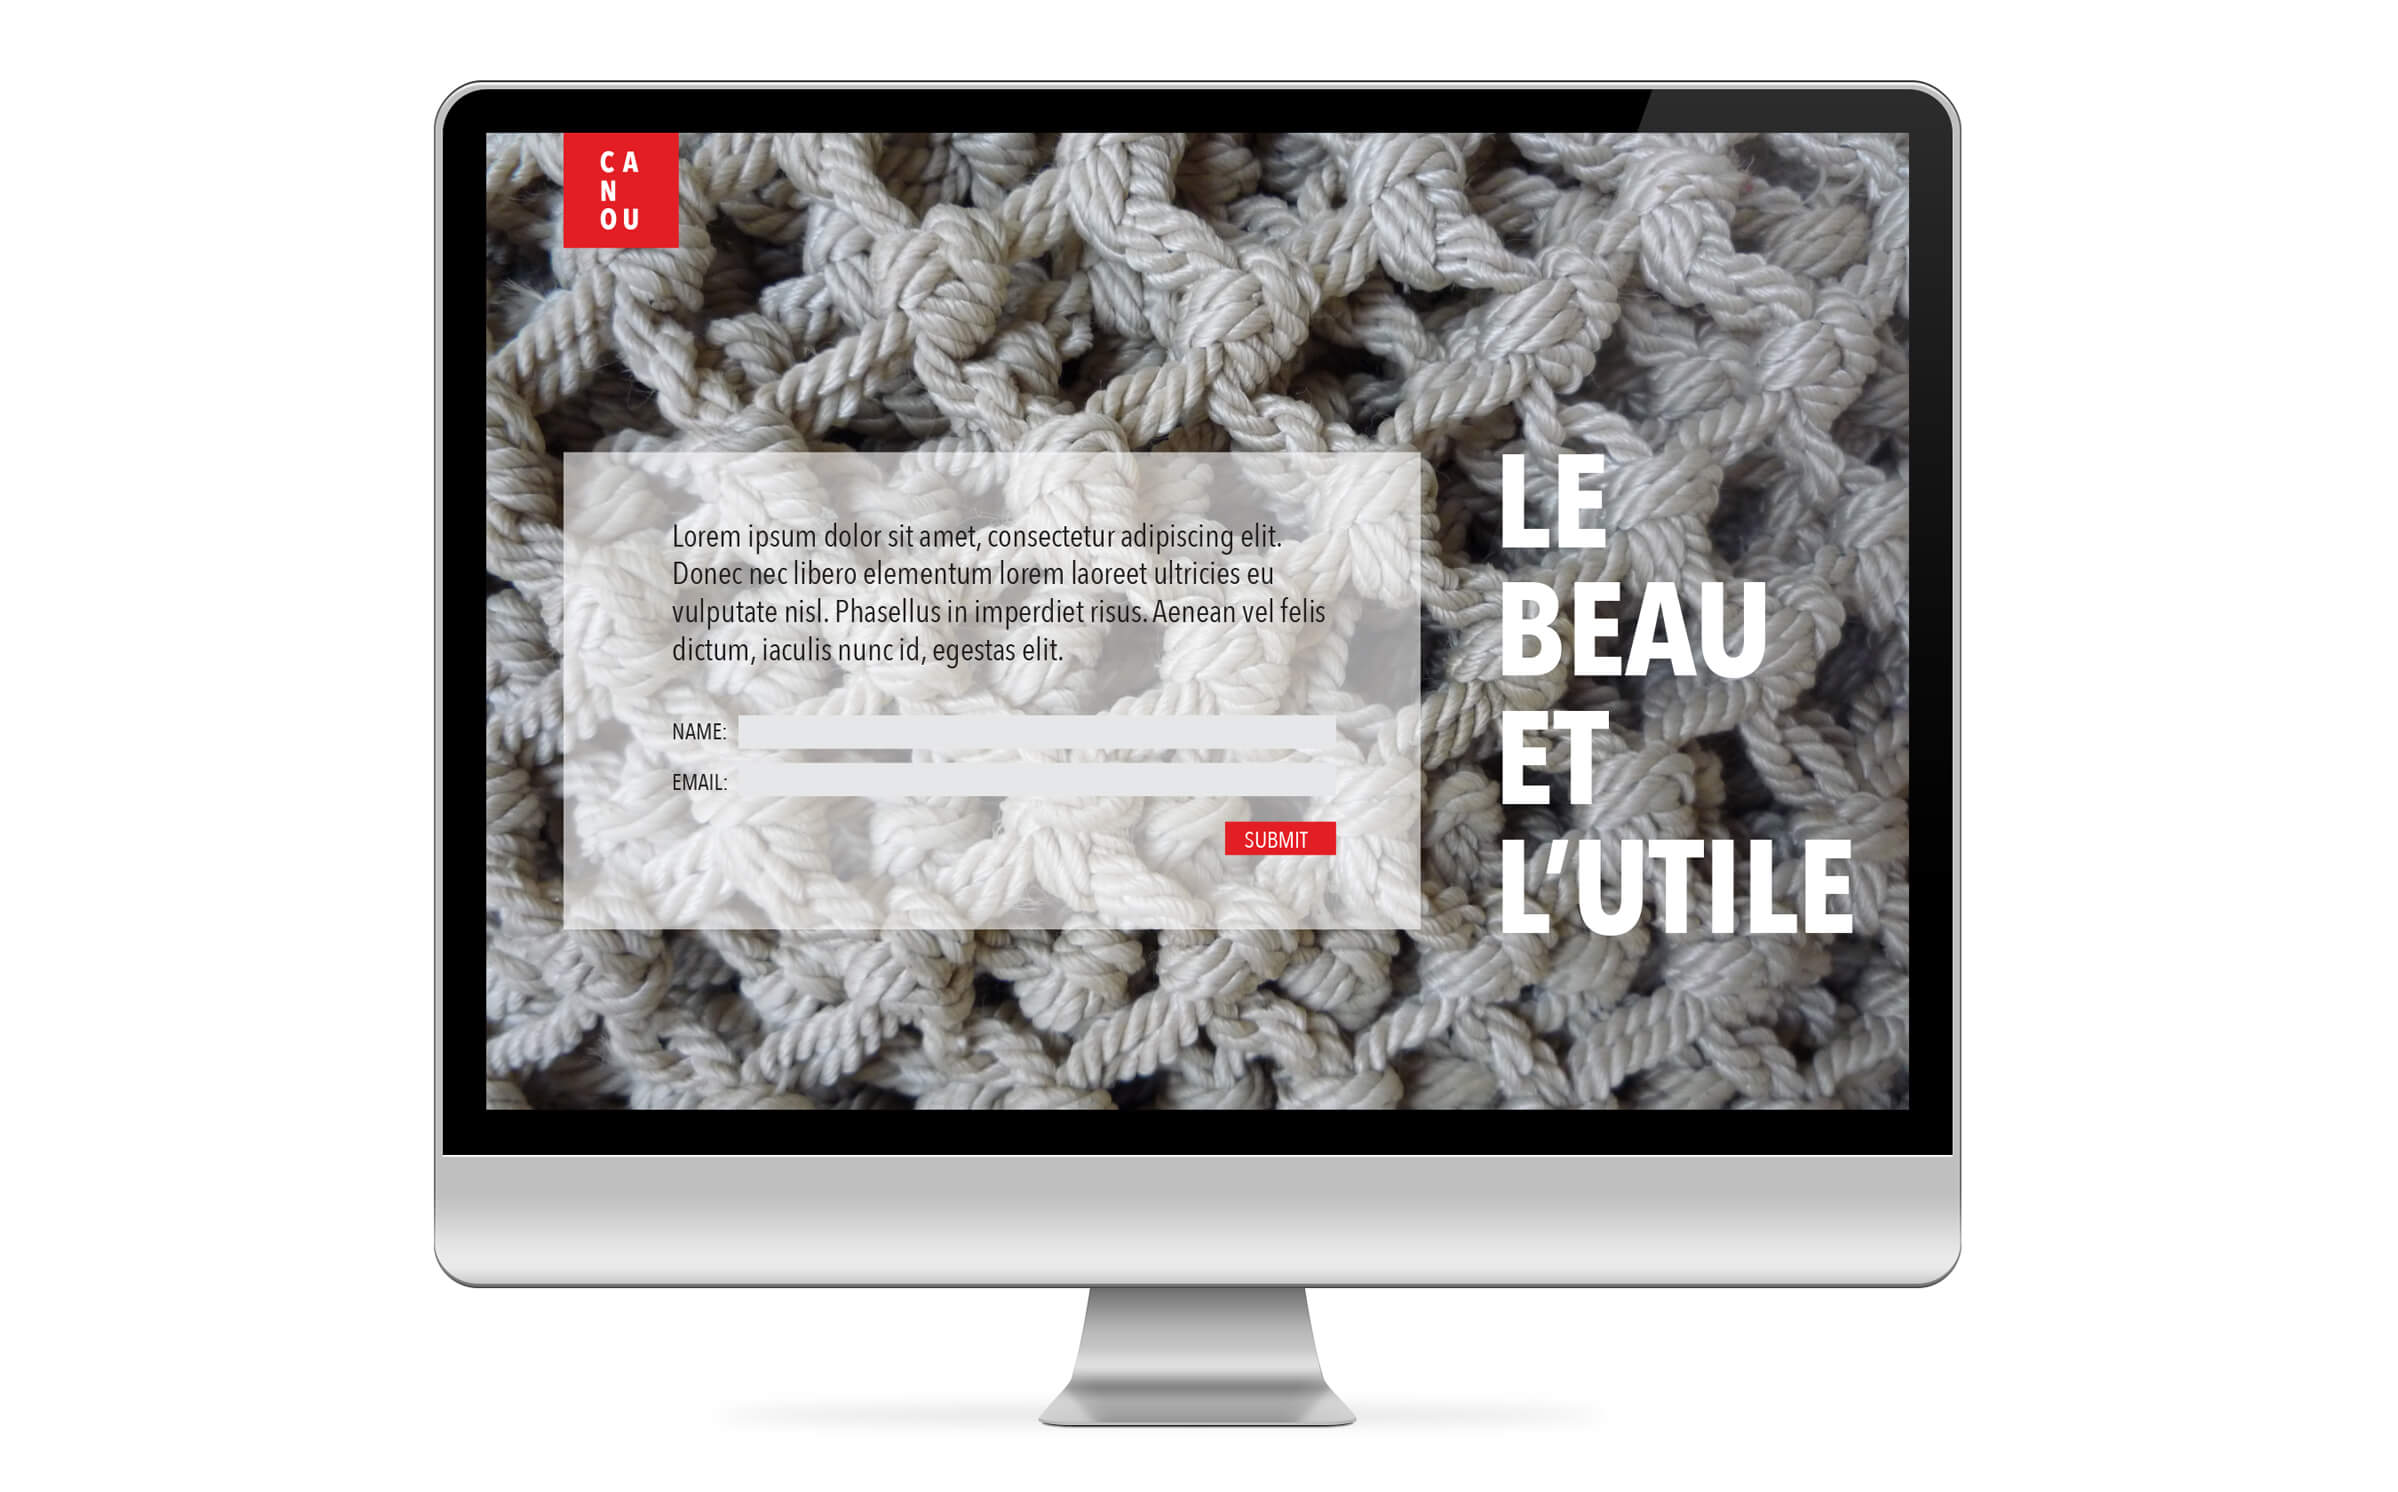 Website for Canou, a Québec product manufacturer, by Ottawa Graphic Design Studio idApostle